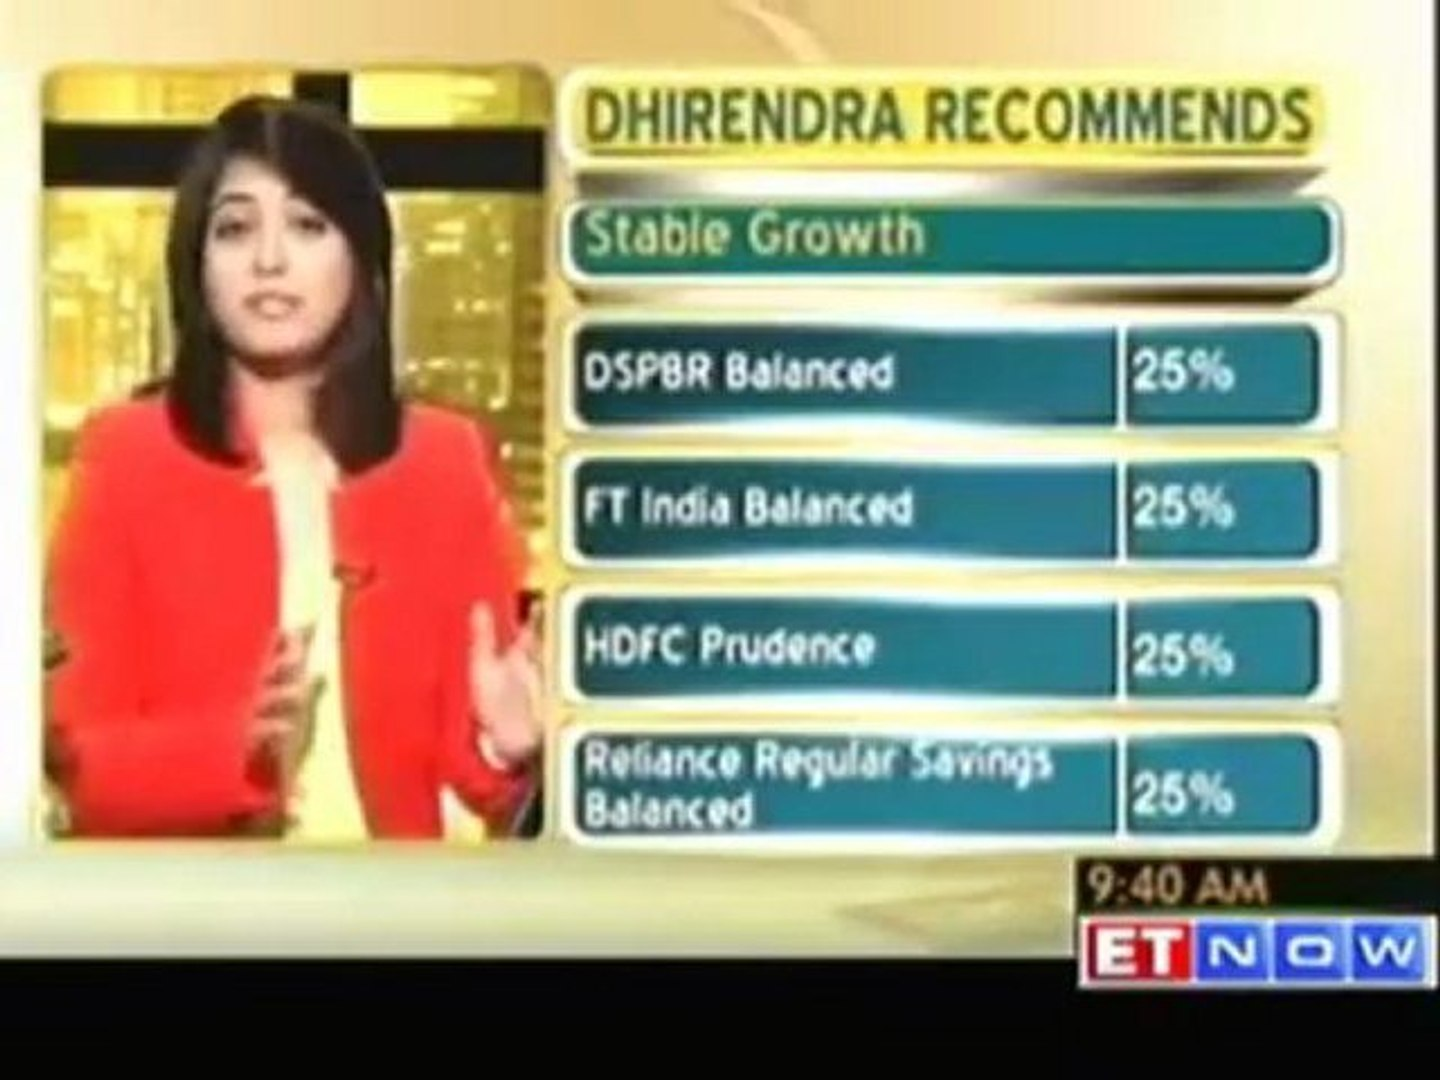 Dhirendra's suggestions for a 41 year old regular investor